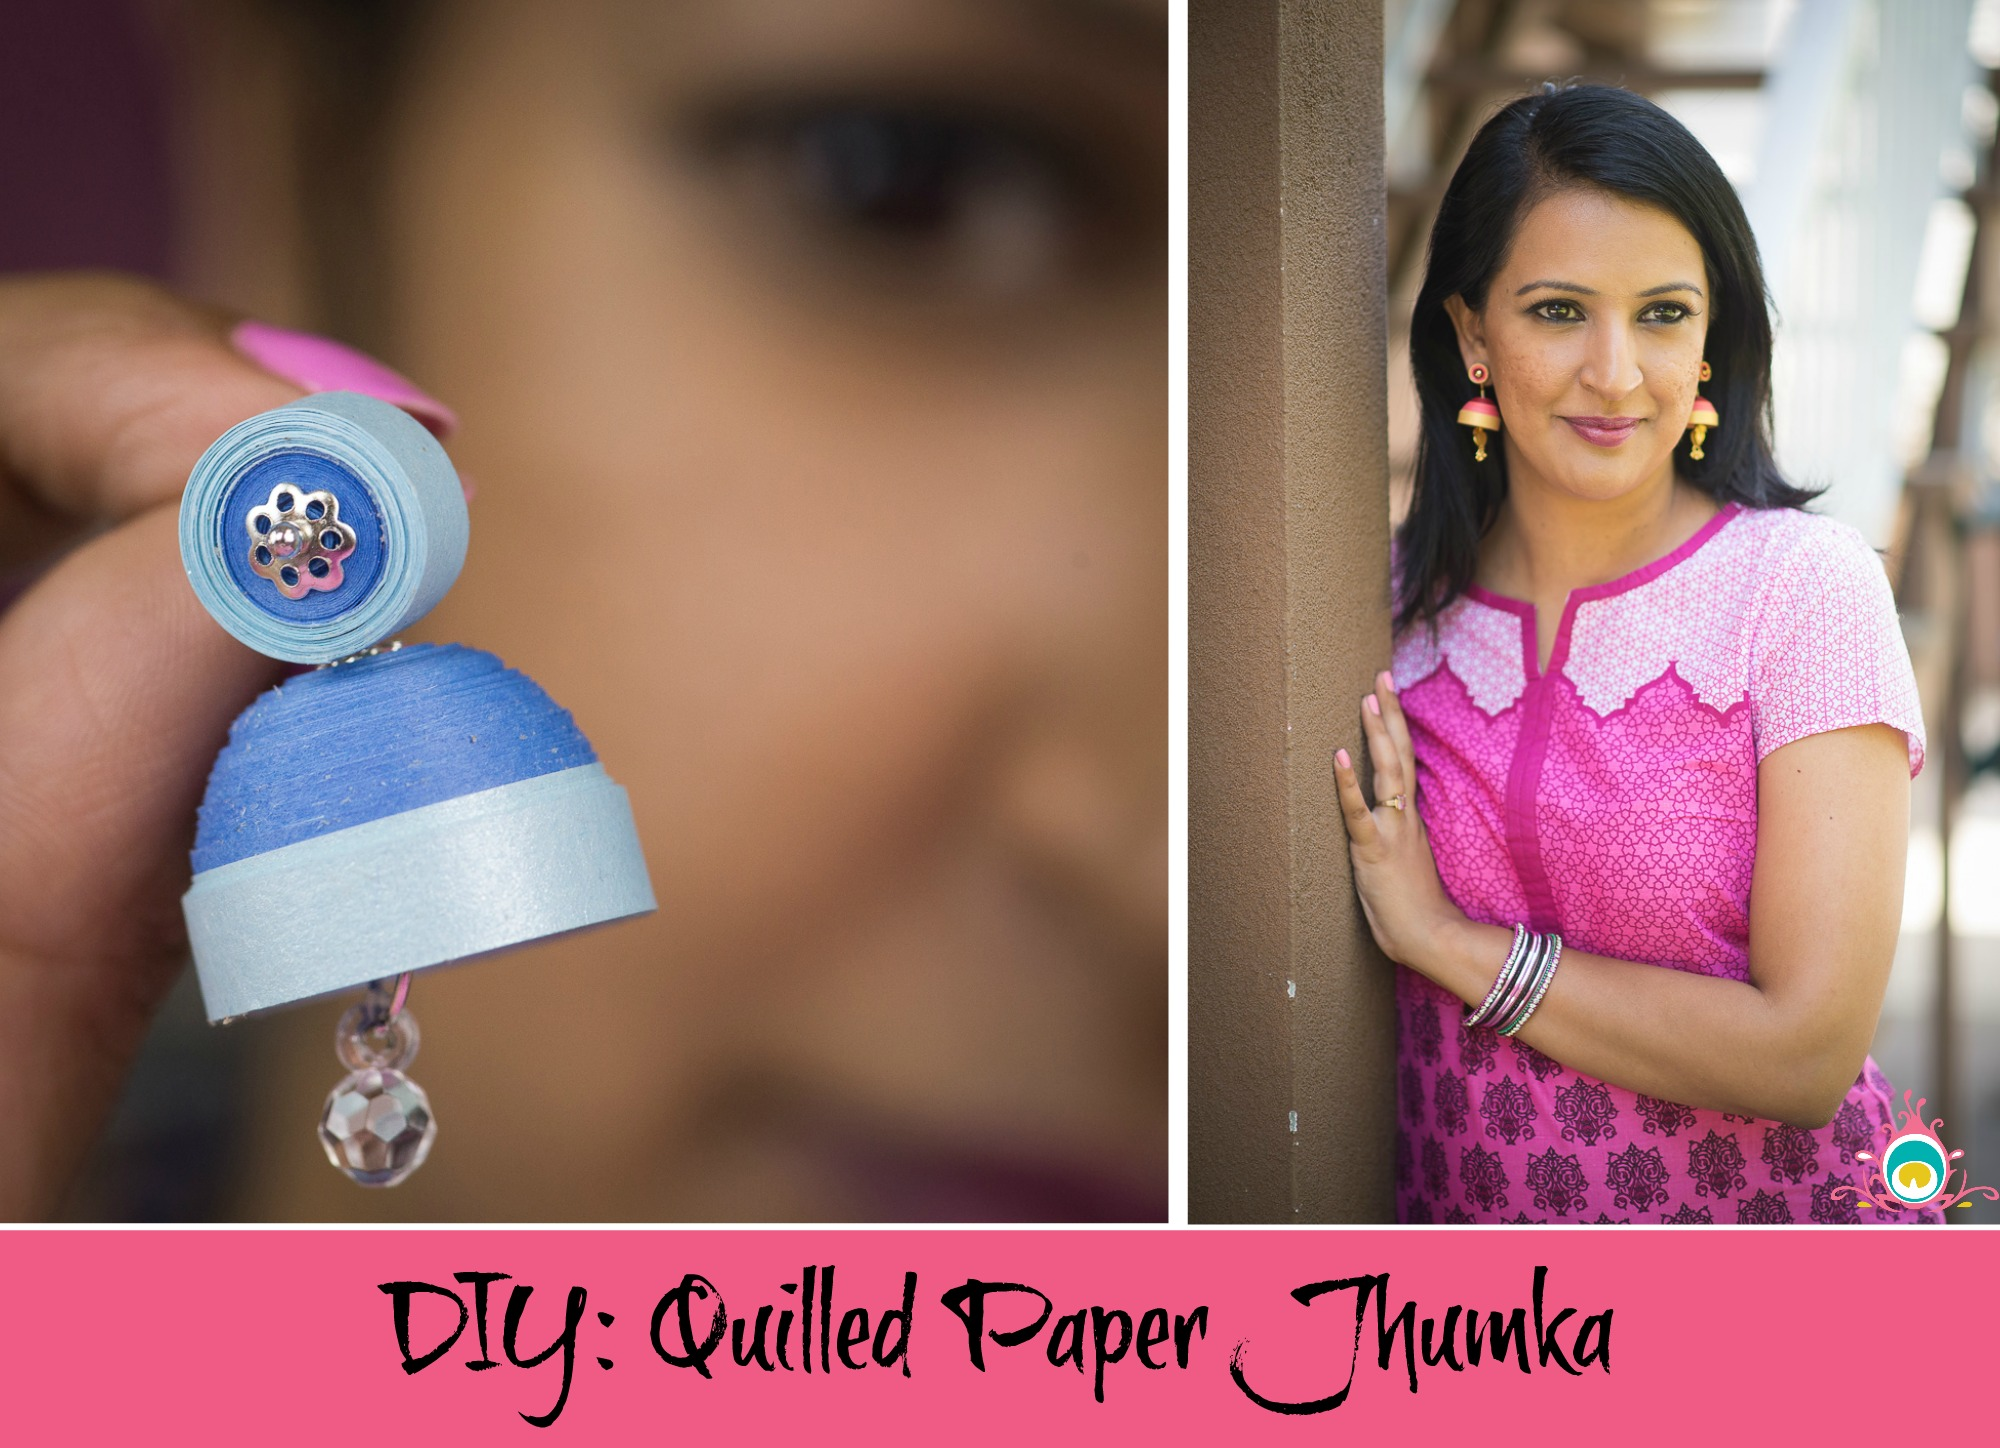 diy quilled paper jhumka - step by step instructions pink chai living